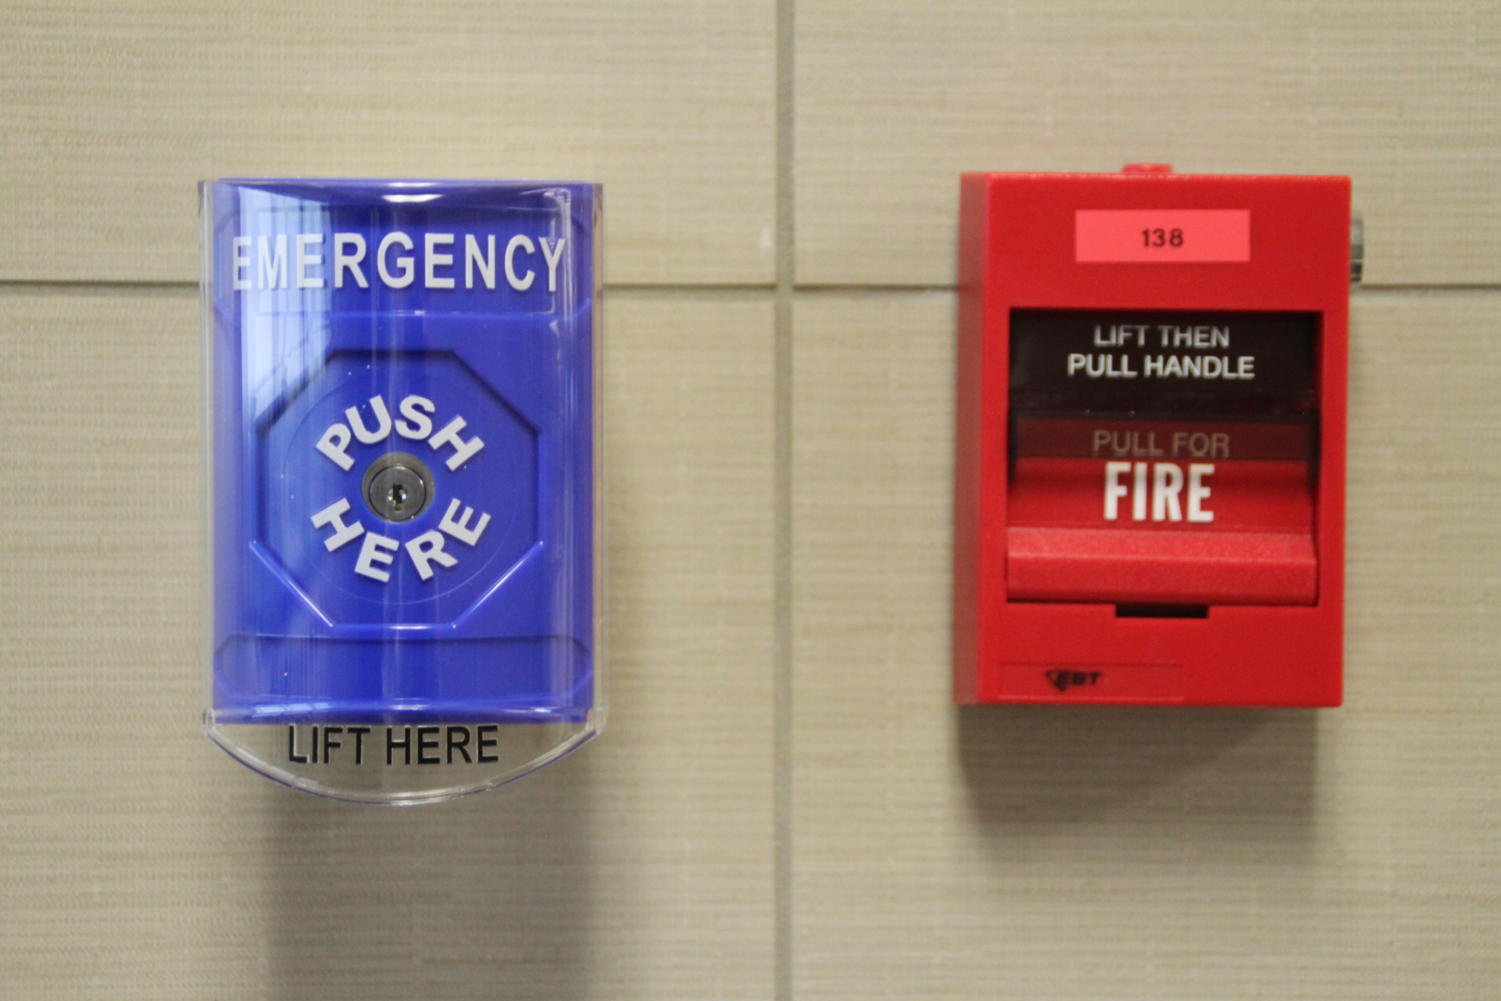 The new blue security buttons are located next to the existing fire alarms.